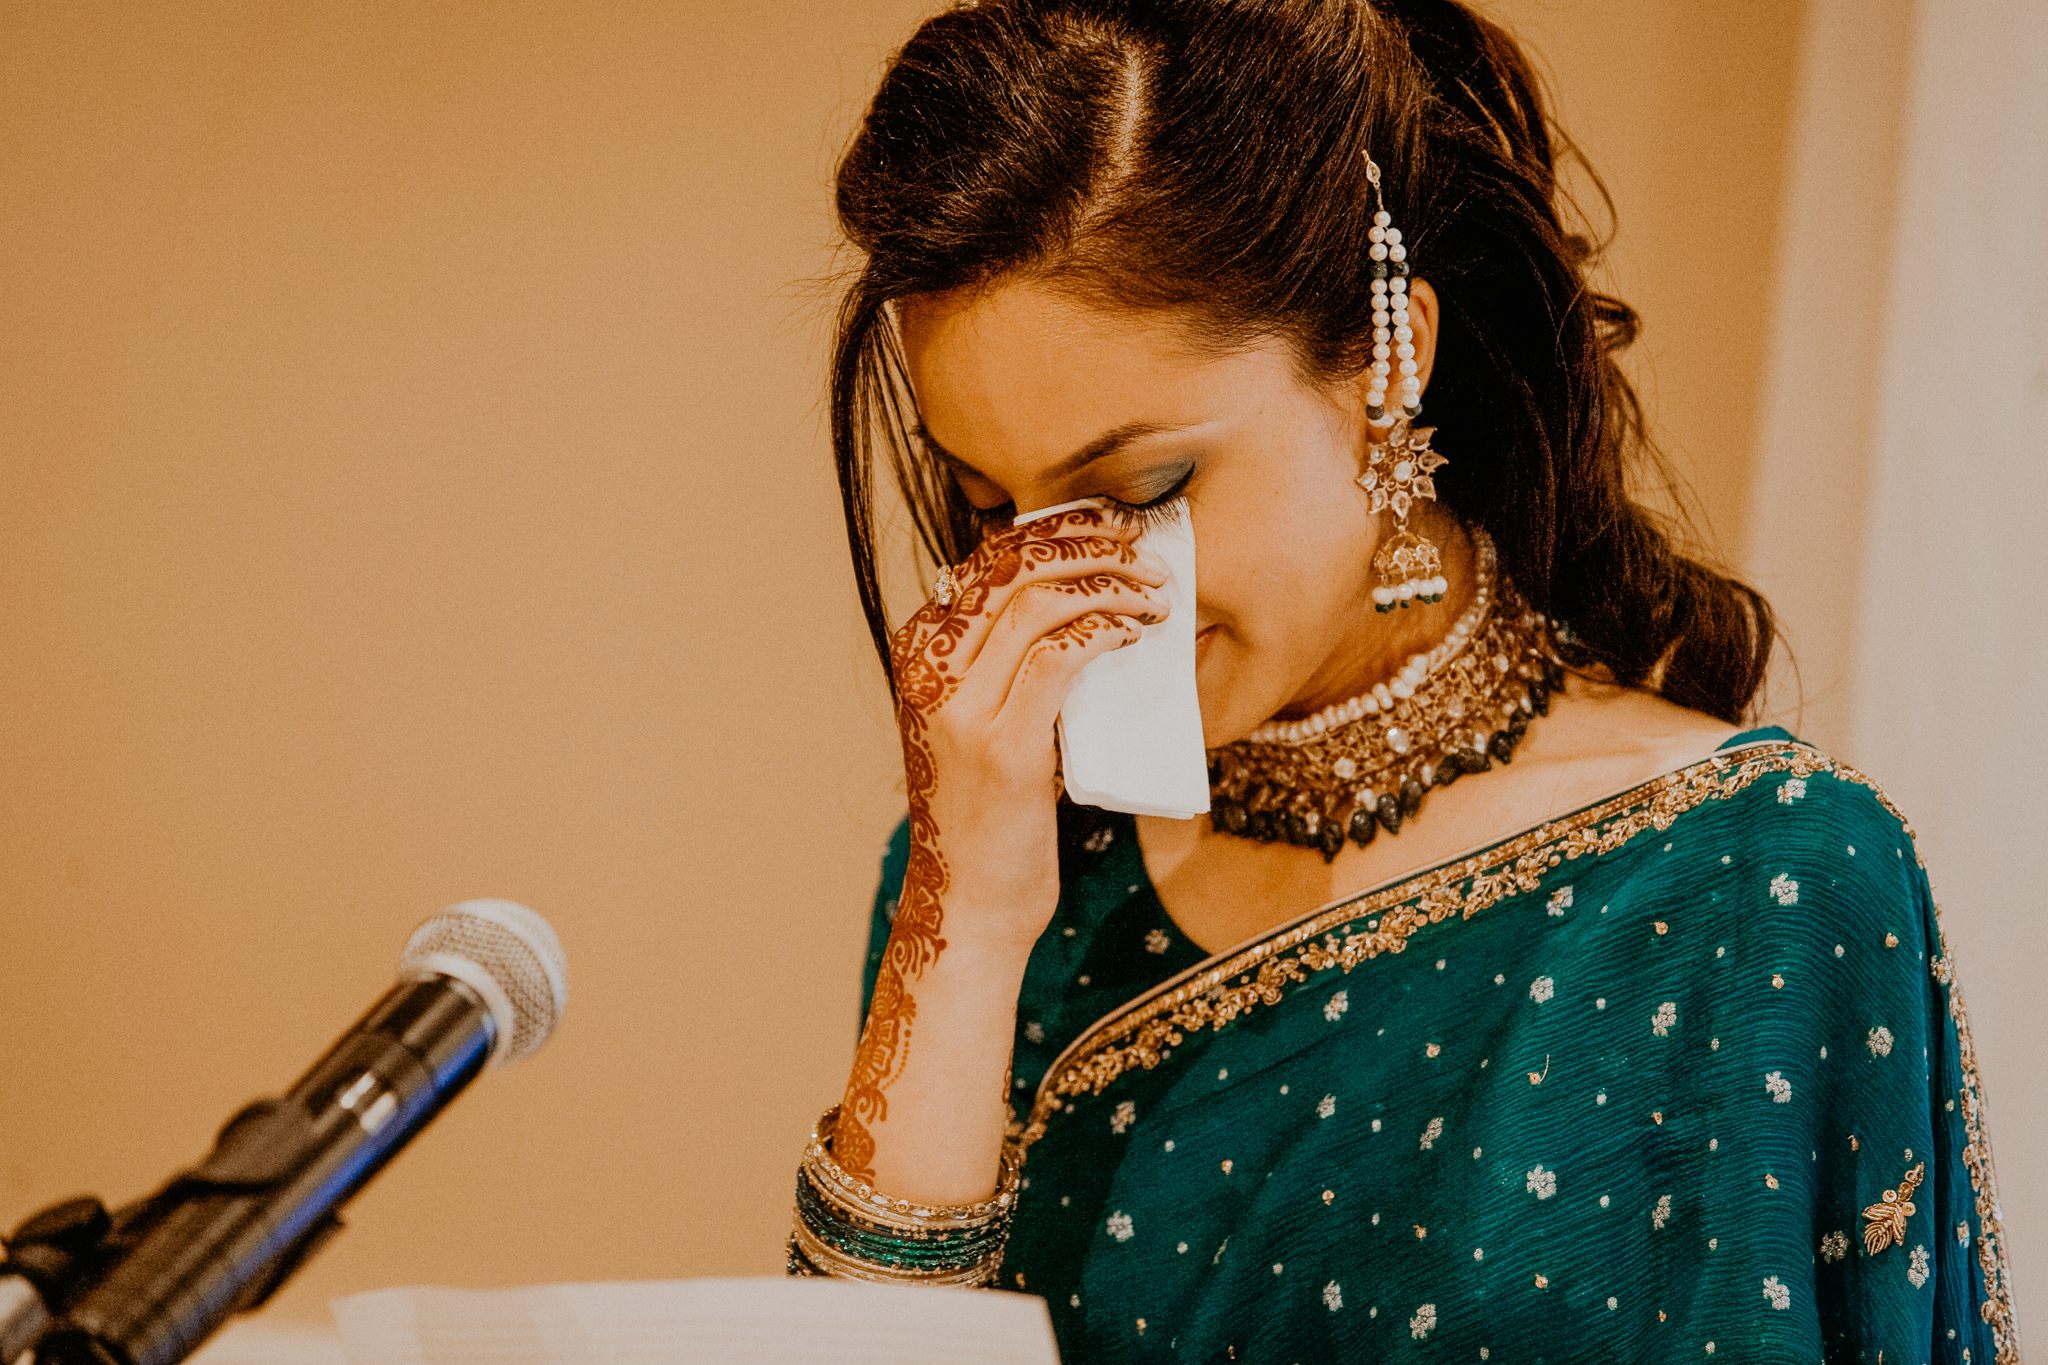 Sister of bride makes speech at Indian wedding